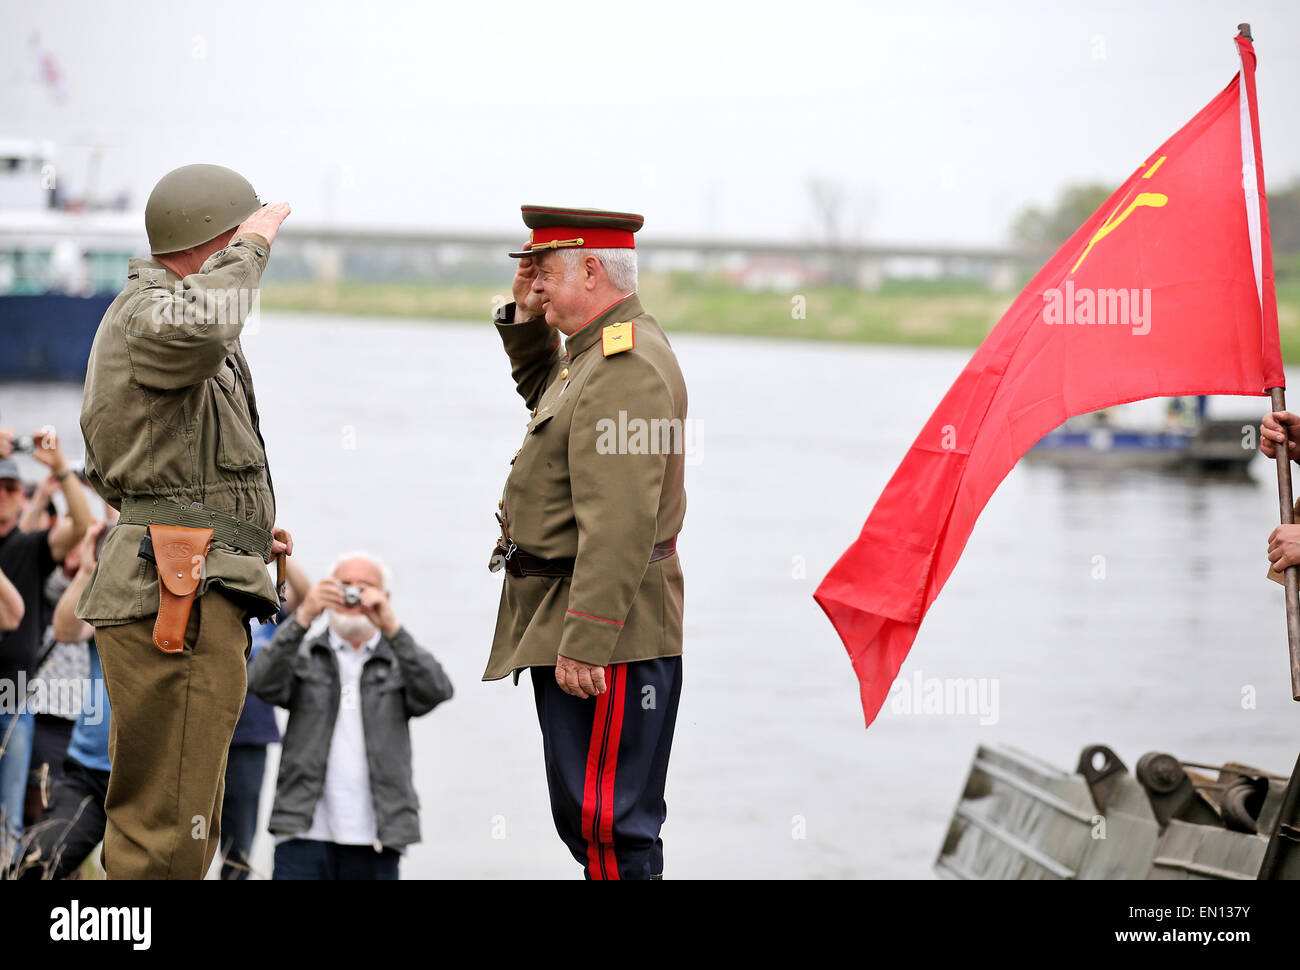 Torgau, Germany. 25th Apr, 2015. Two men reenact a historic meeting between Soviet and US (L) soldiers toward the Stock Photo